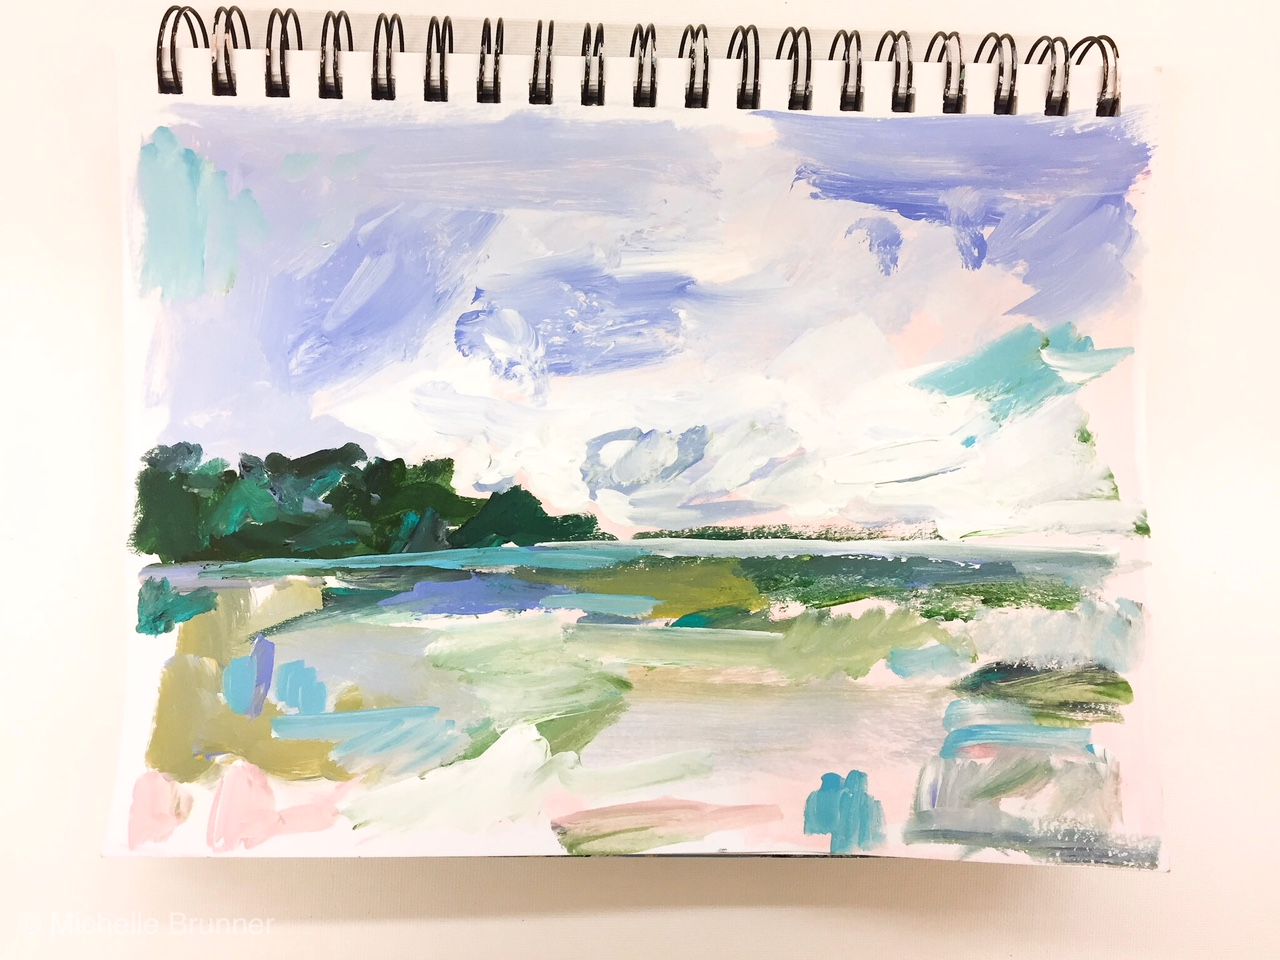 Working in a small sketchbook allows me to play around and experiment with different subject matter and styles. This is an example of a very quickly painted sketchbook.